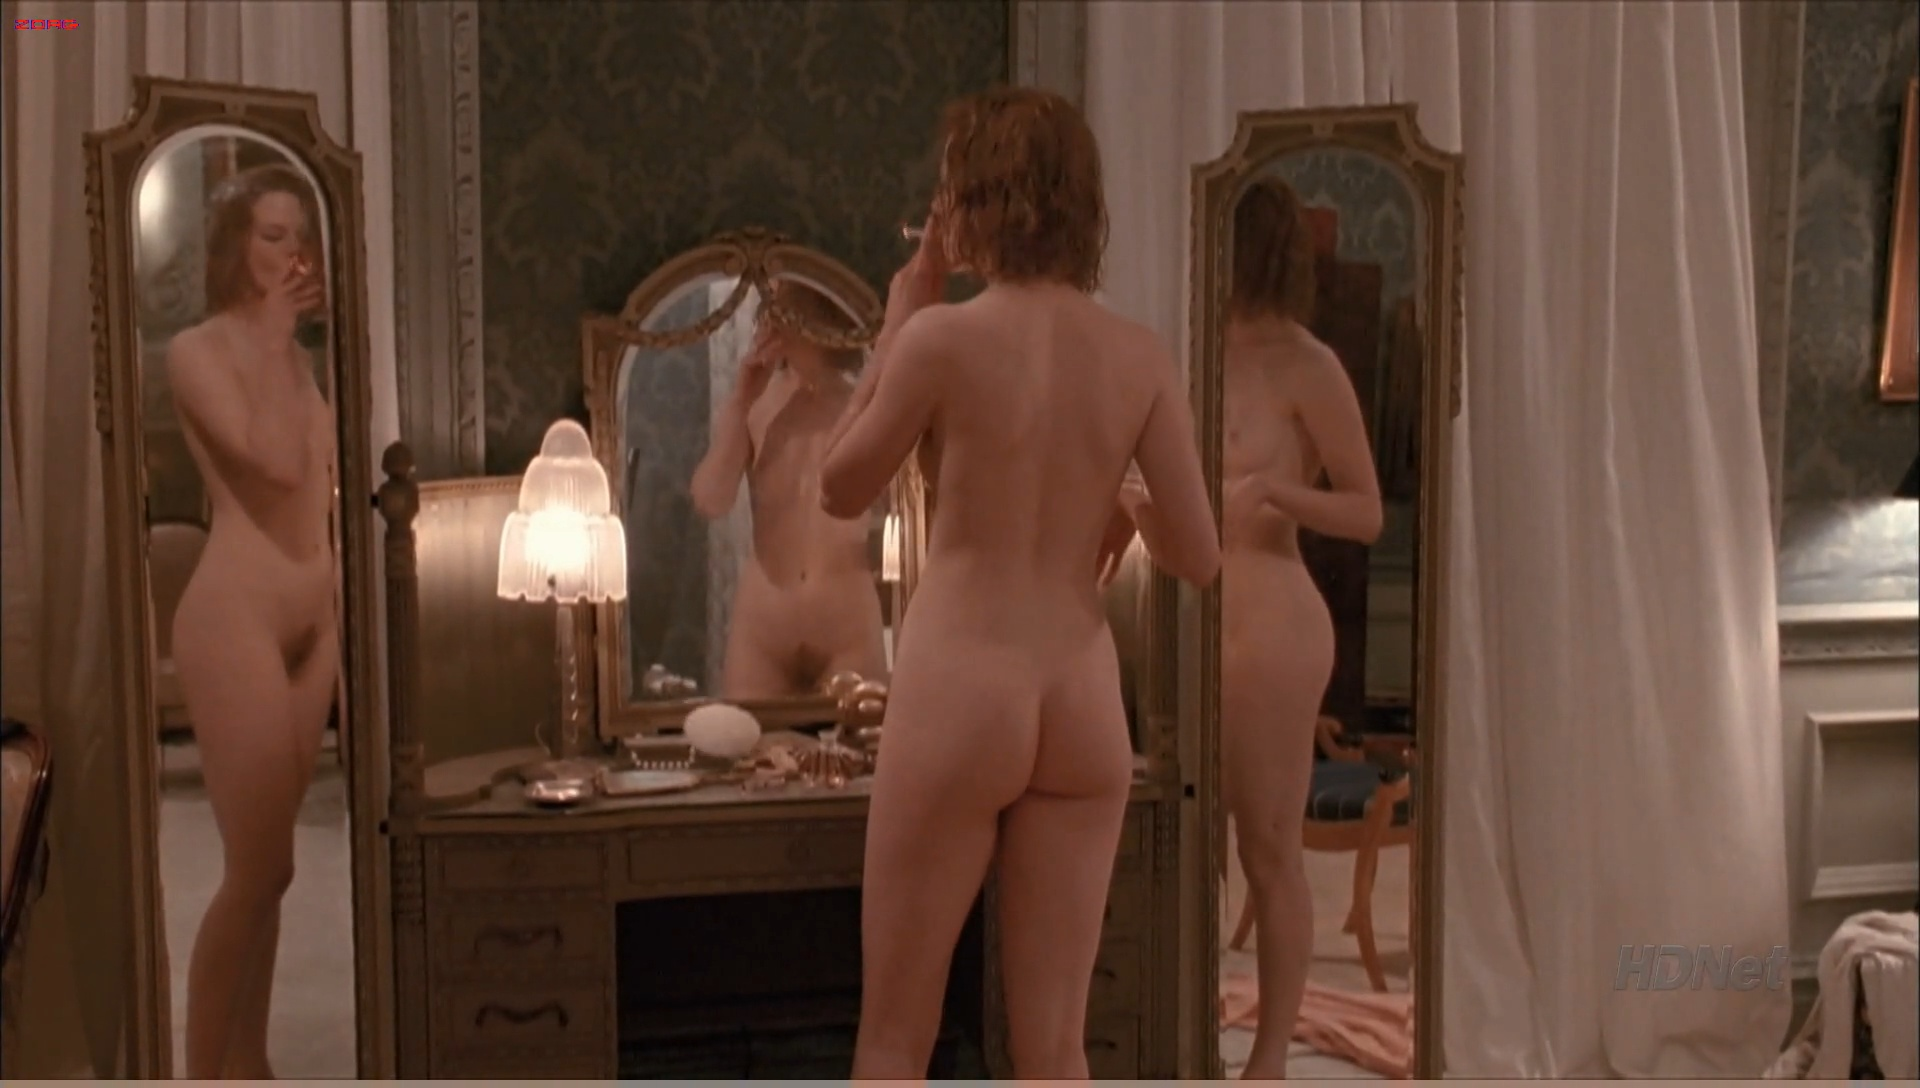 Nicole Kidman - tits and ass